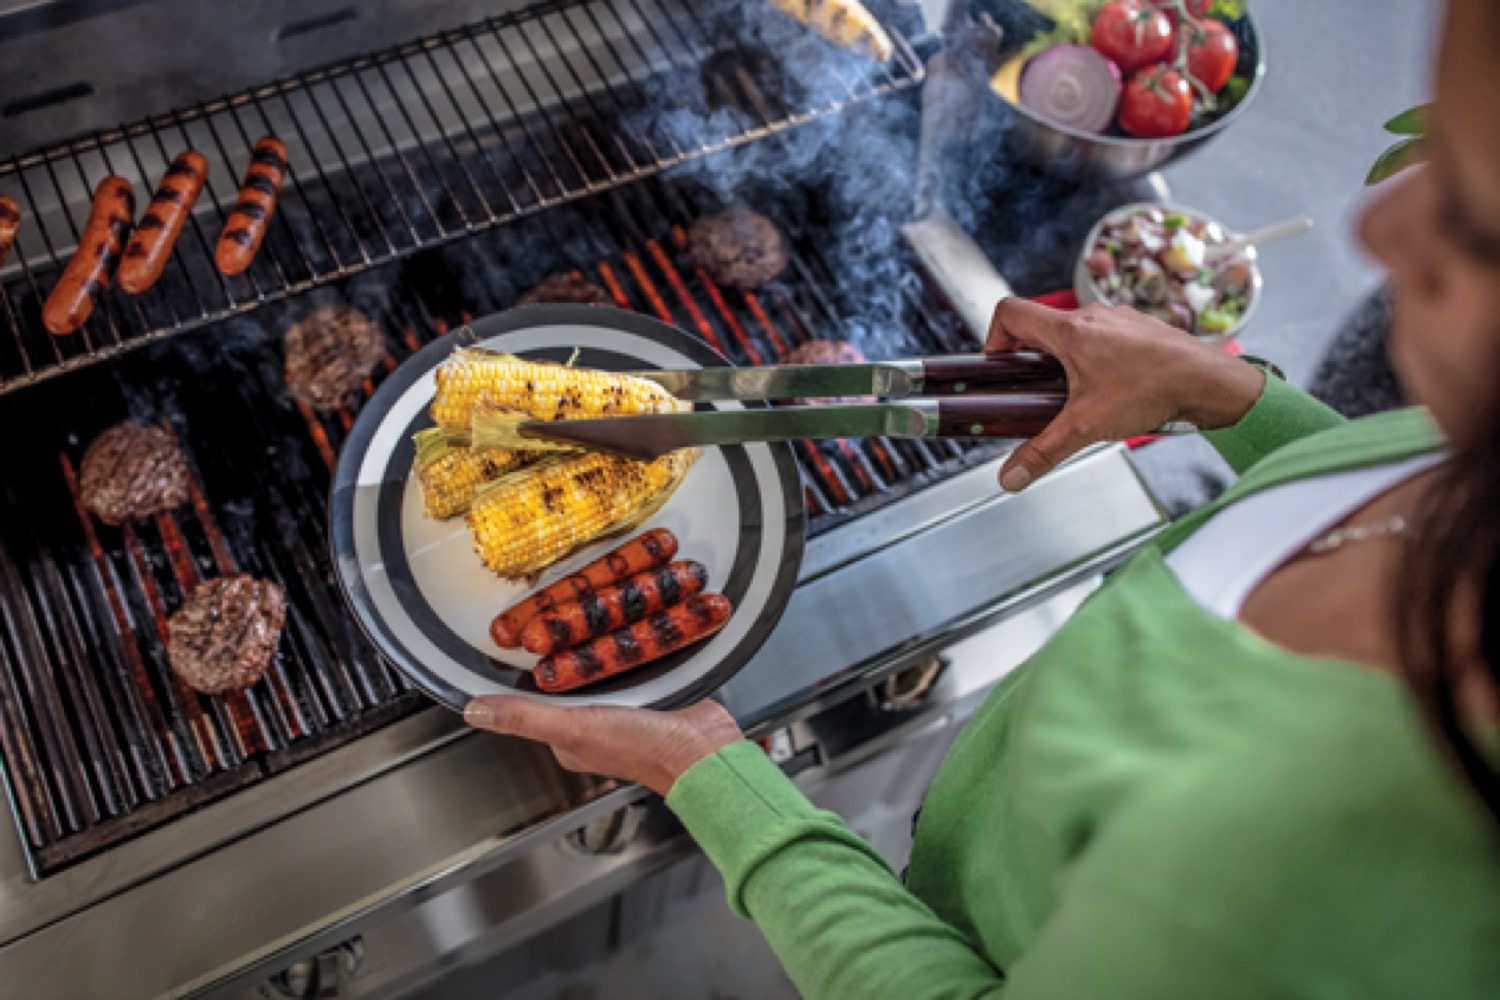 Woman removing corn and hotdogs from a propane barbeque and placing them on a plate.